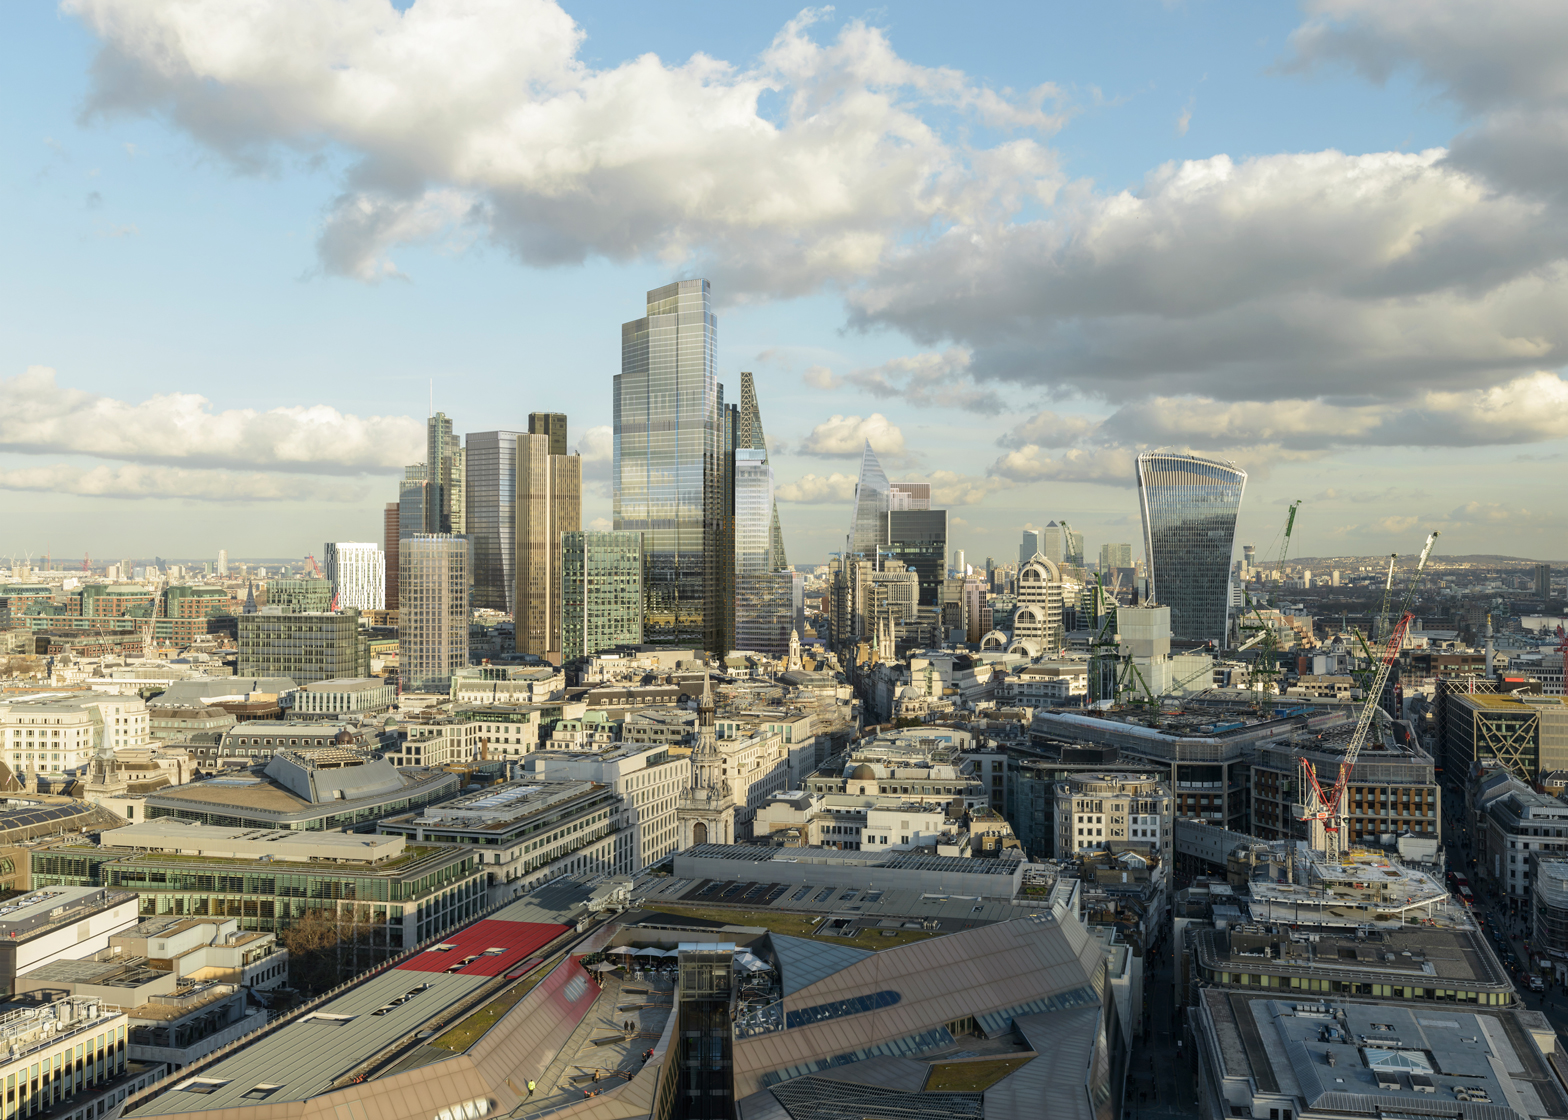 Future vision of the City of London